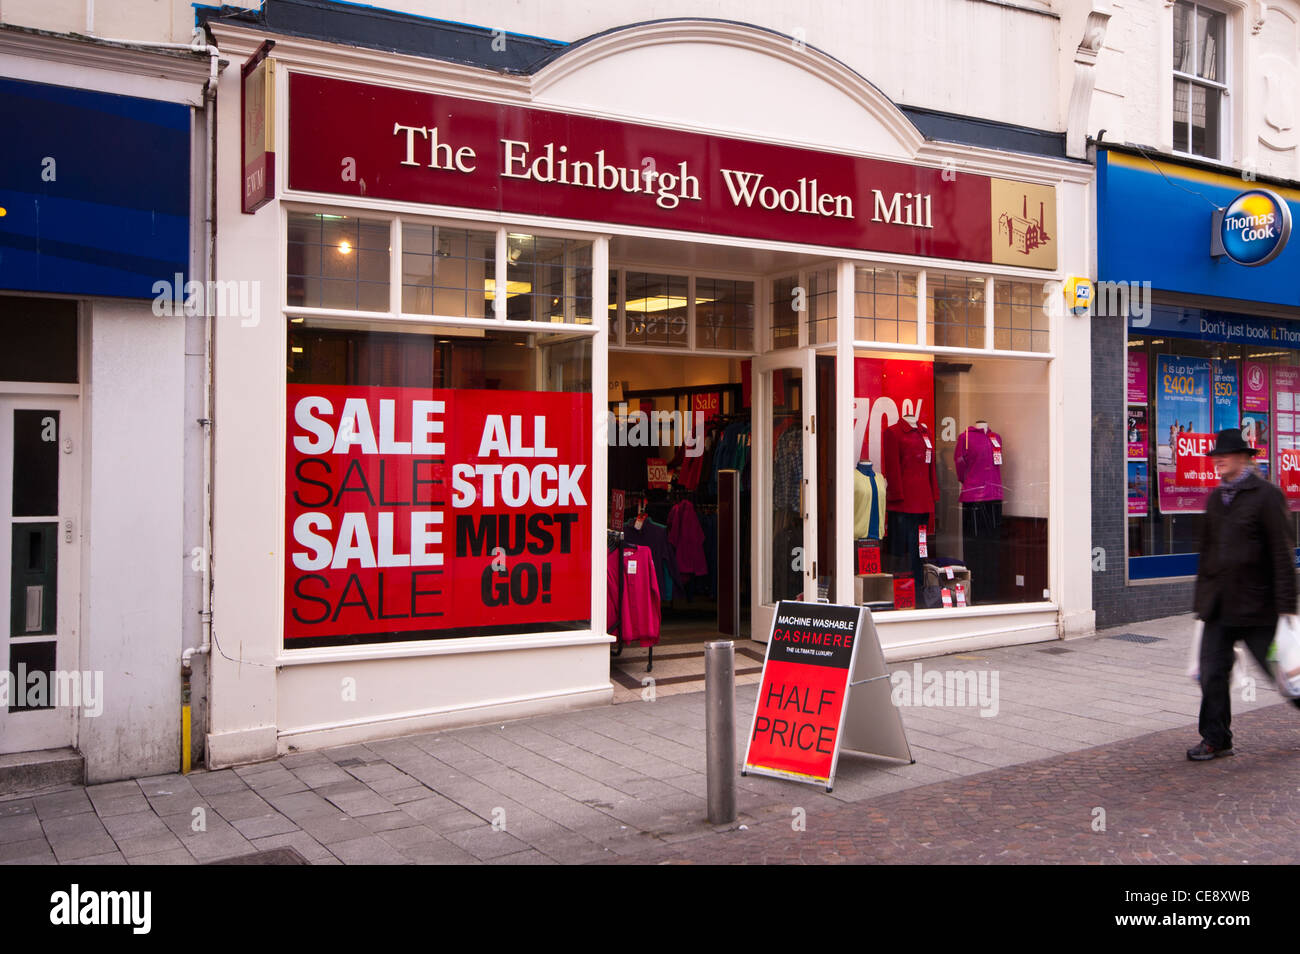 uk high street clothes clothing shop shops the edinburgh woollen